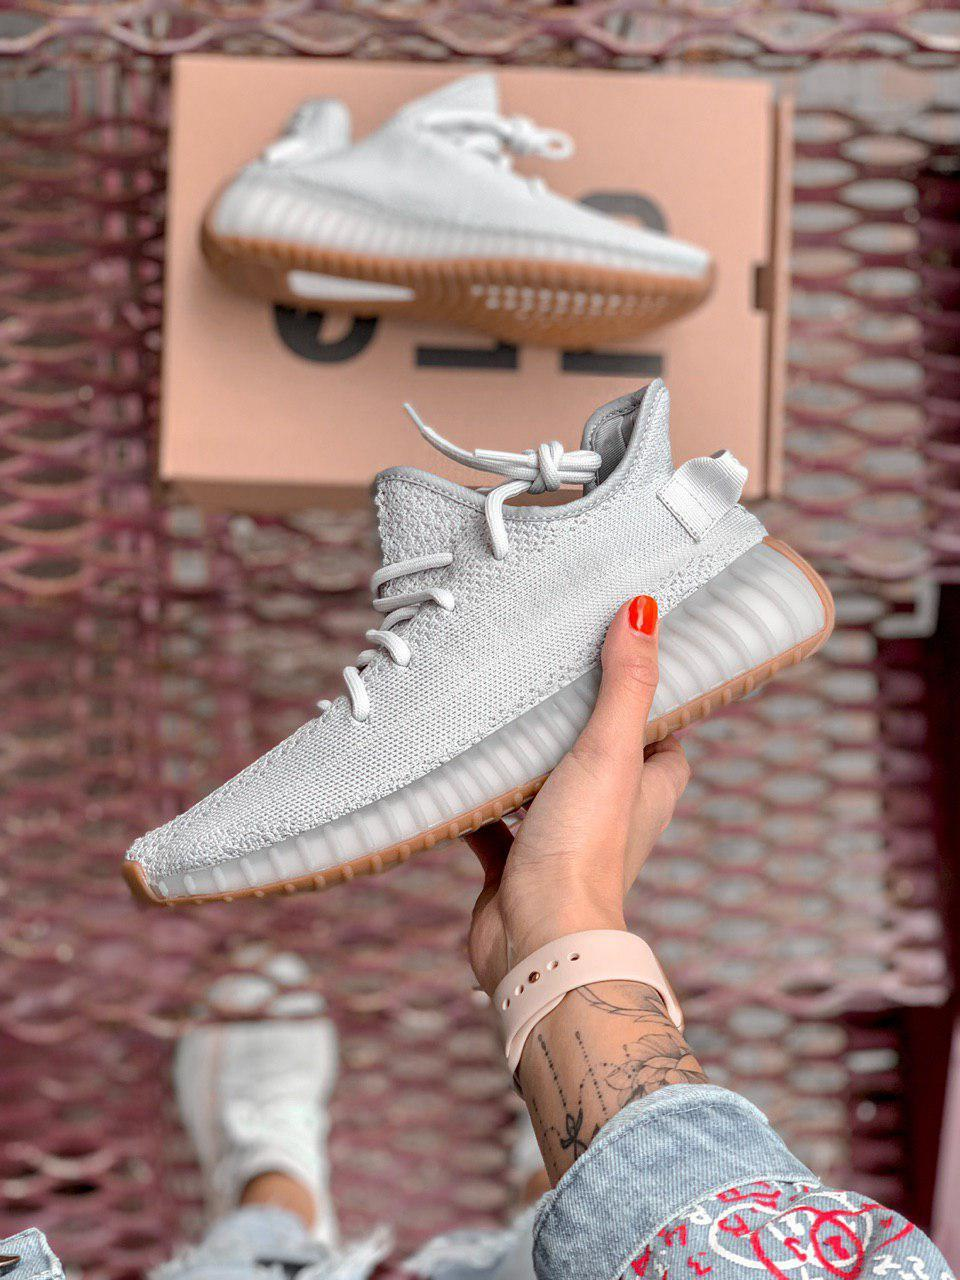 outlet store c417c fe24b Кроссовки Adidas Yeezy Boost 350 V2 light grey